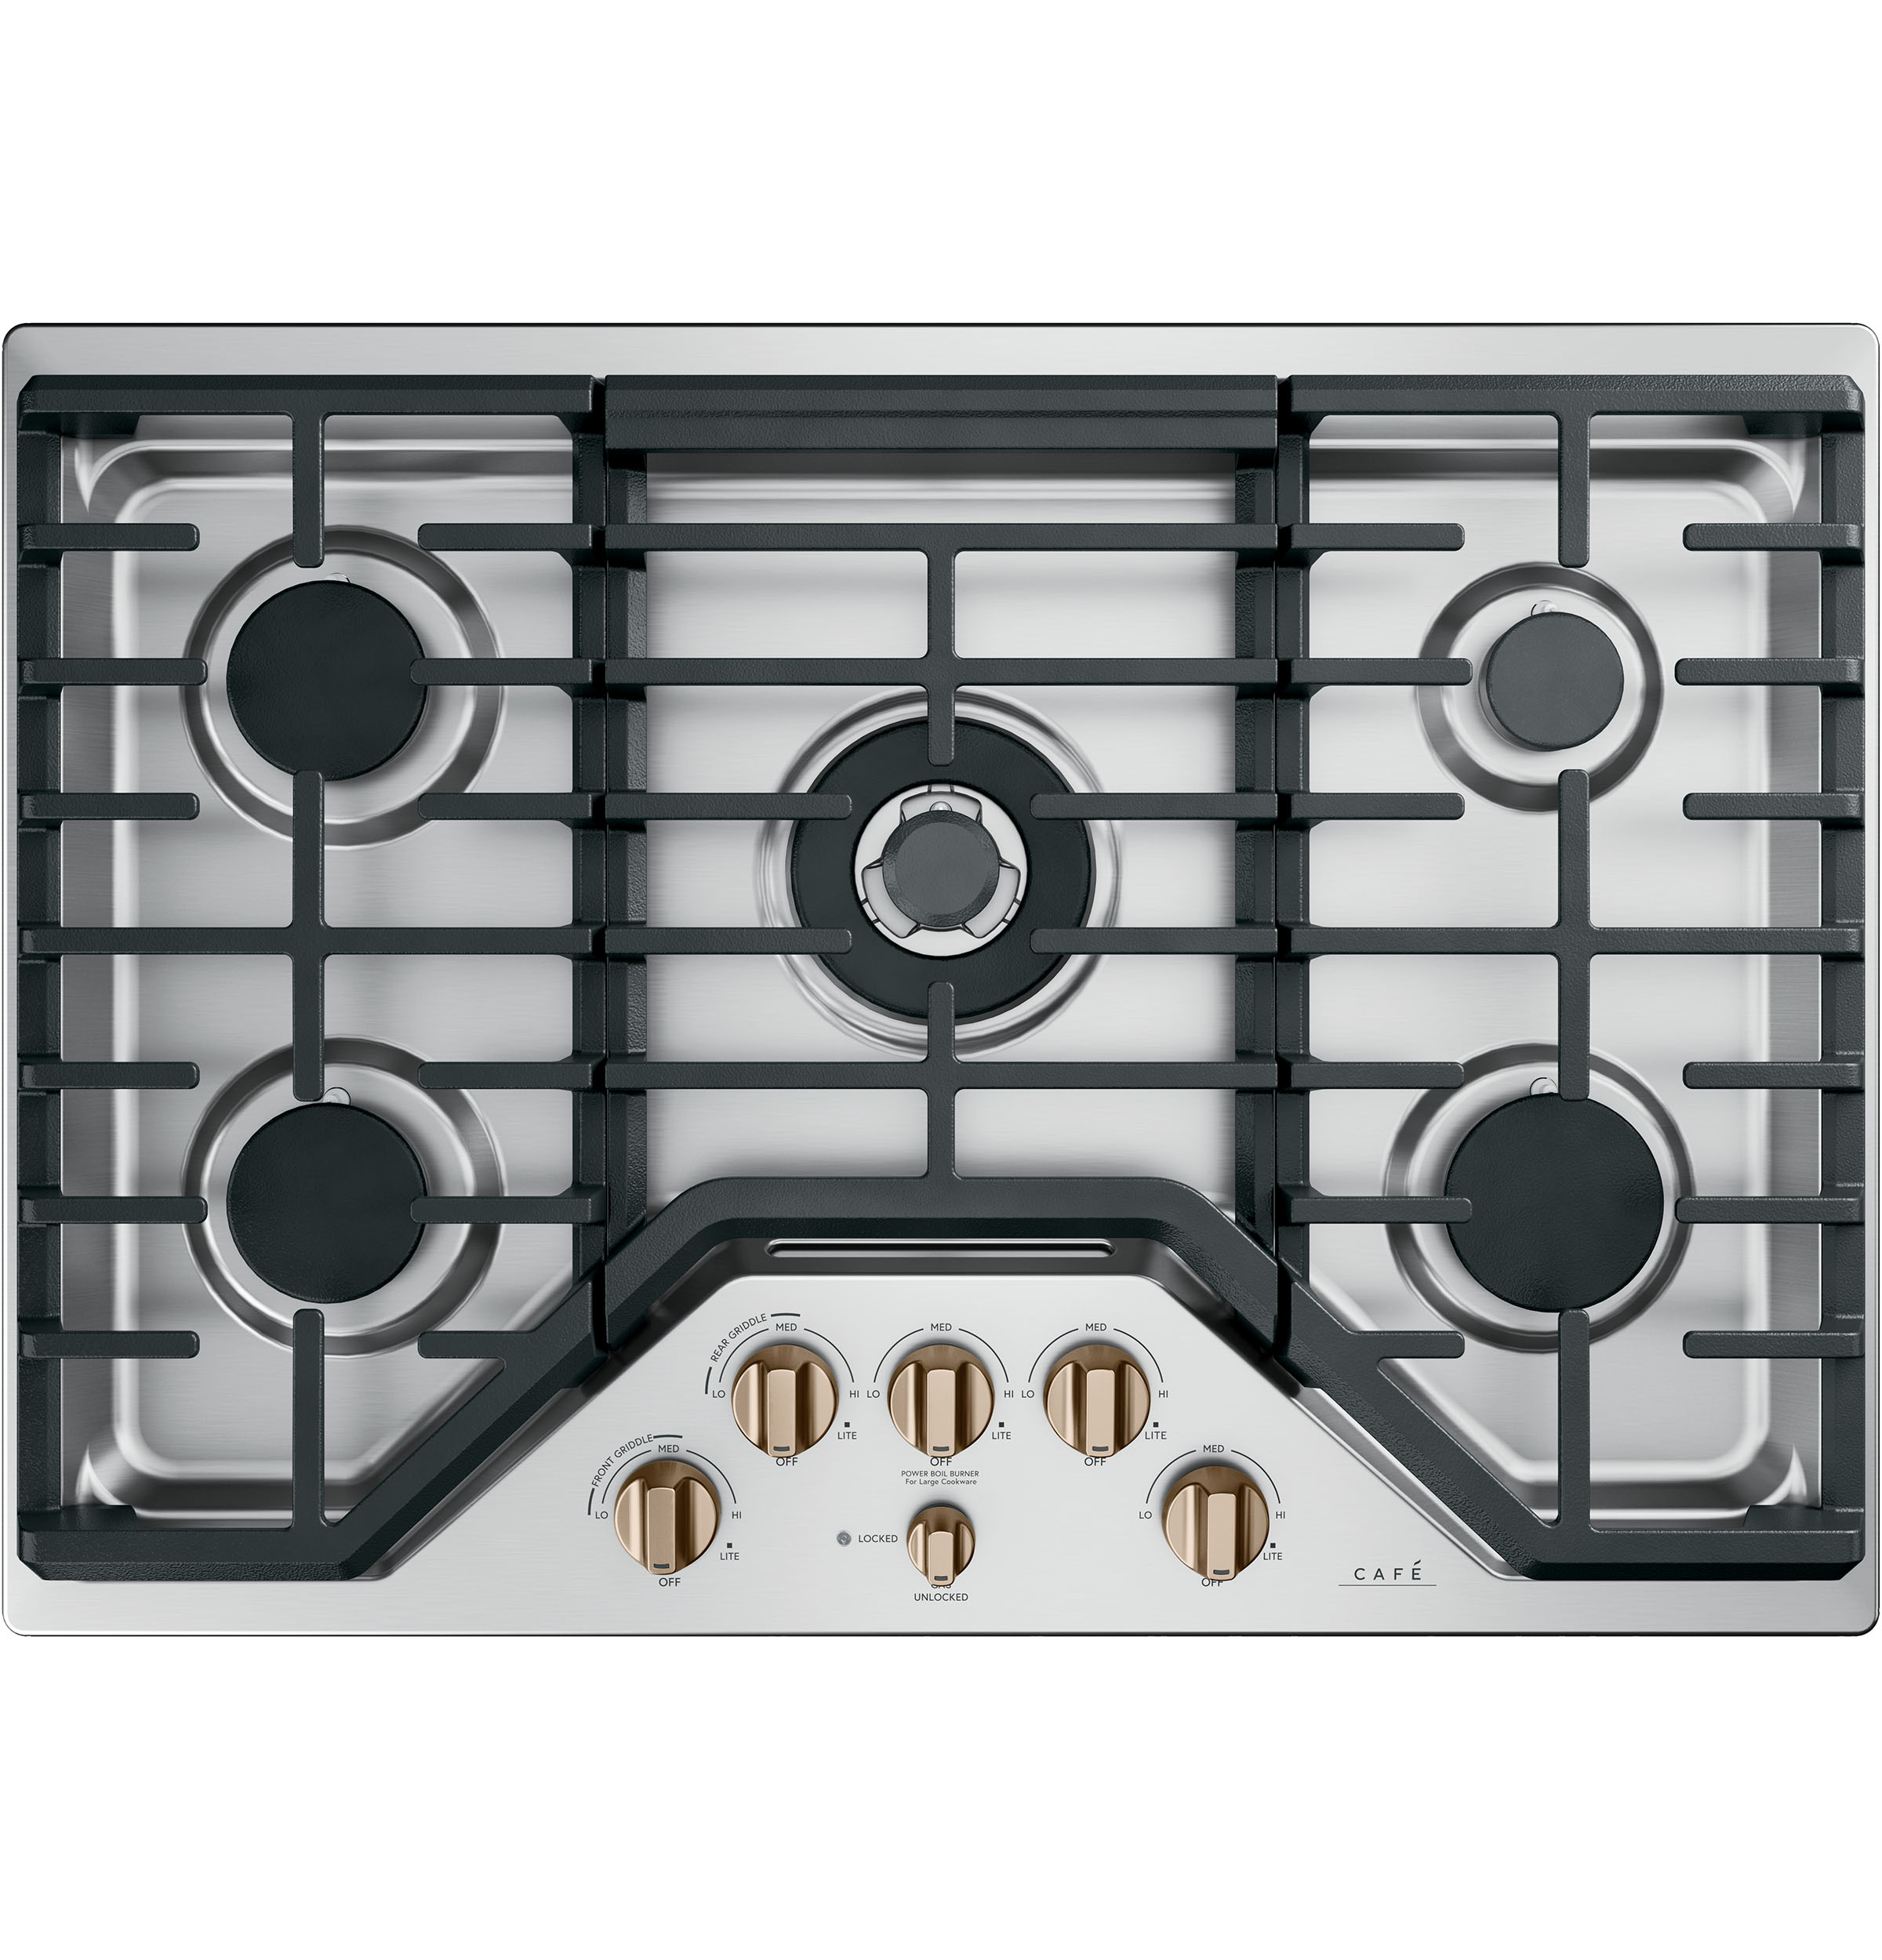 "Model: CGP95303MS2 | Cafe Café™ 30"" Gas Cooktop"